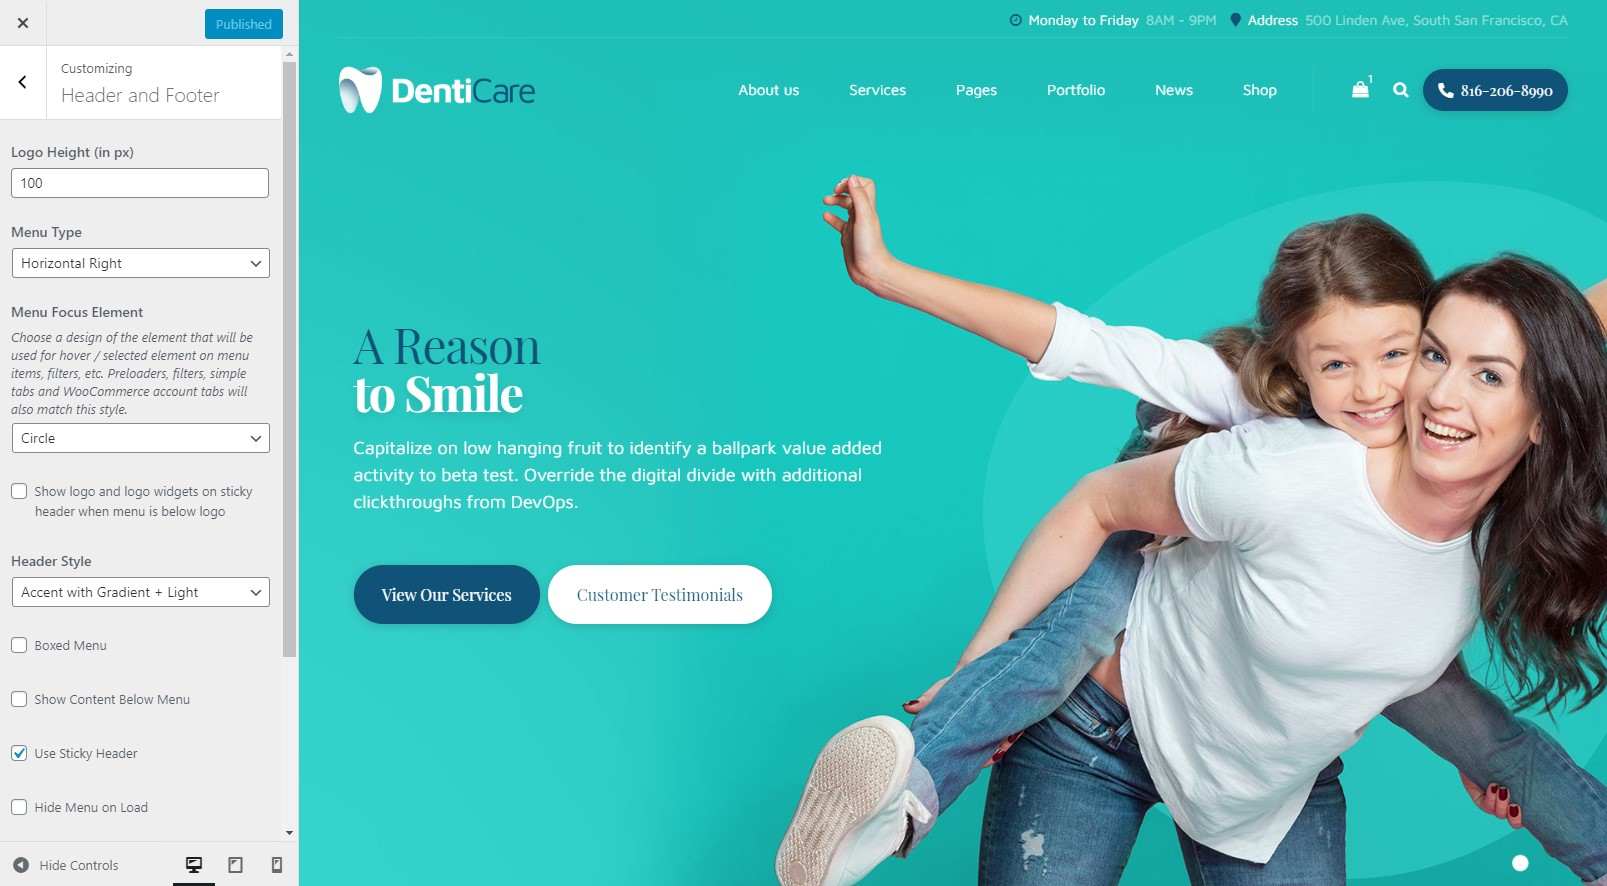 http://documentation.bold-themes.com/denticare/wp-content/uploads/sites/55/2020/03/header-and-footer.jpg